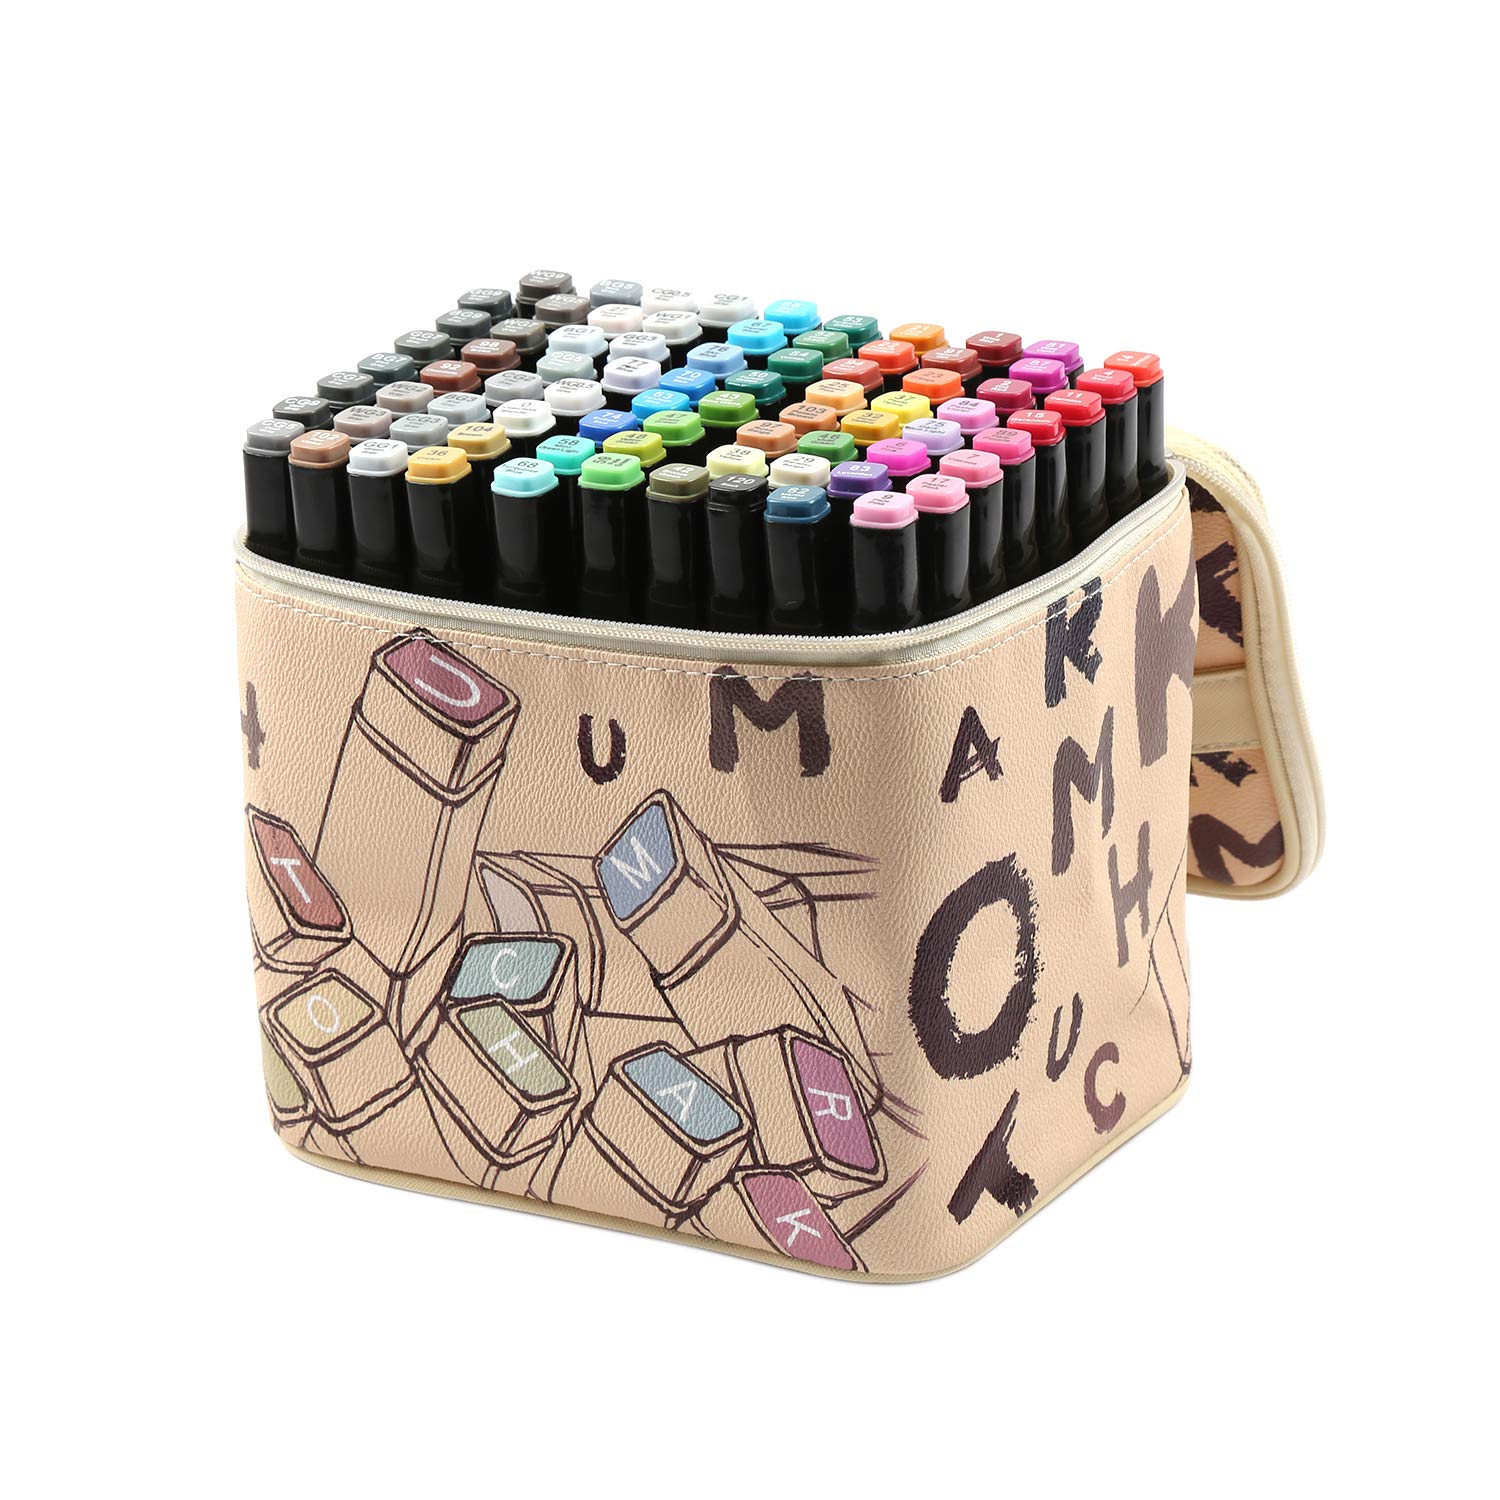 ioiomarker 80 Vibrant Colors Dual Tip Markers Alcohol-Based Permanent Marker Pen Set, Art Profession Drawing Coloring Pens, with Leather Gift Bag for Kids/Adults/Designer(Universal)